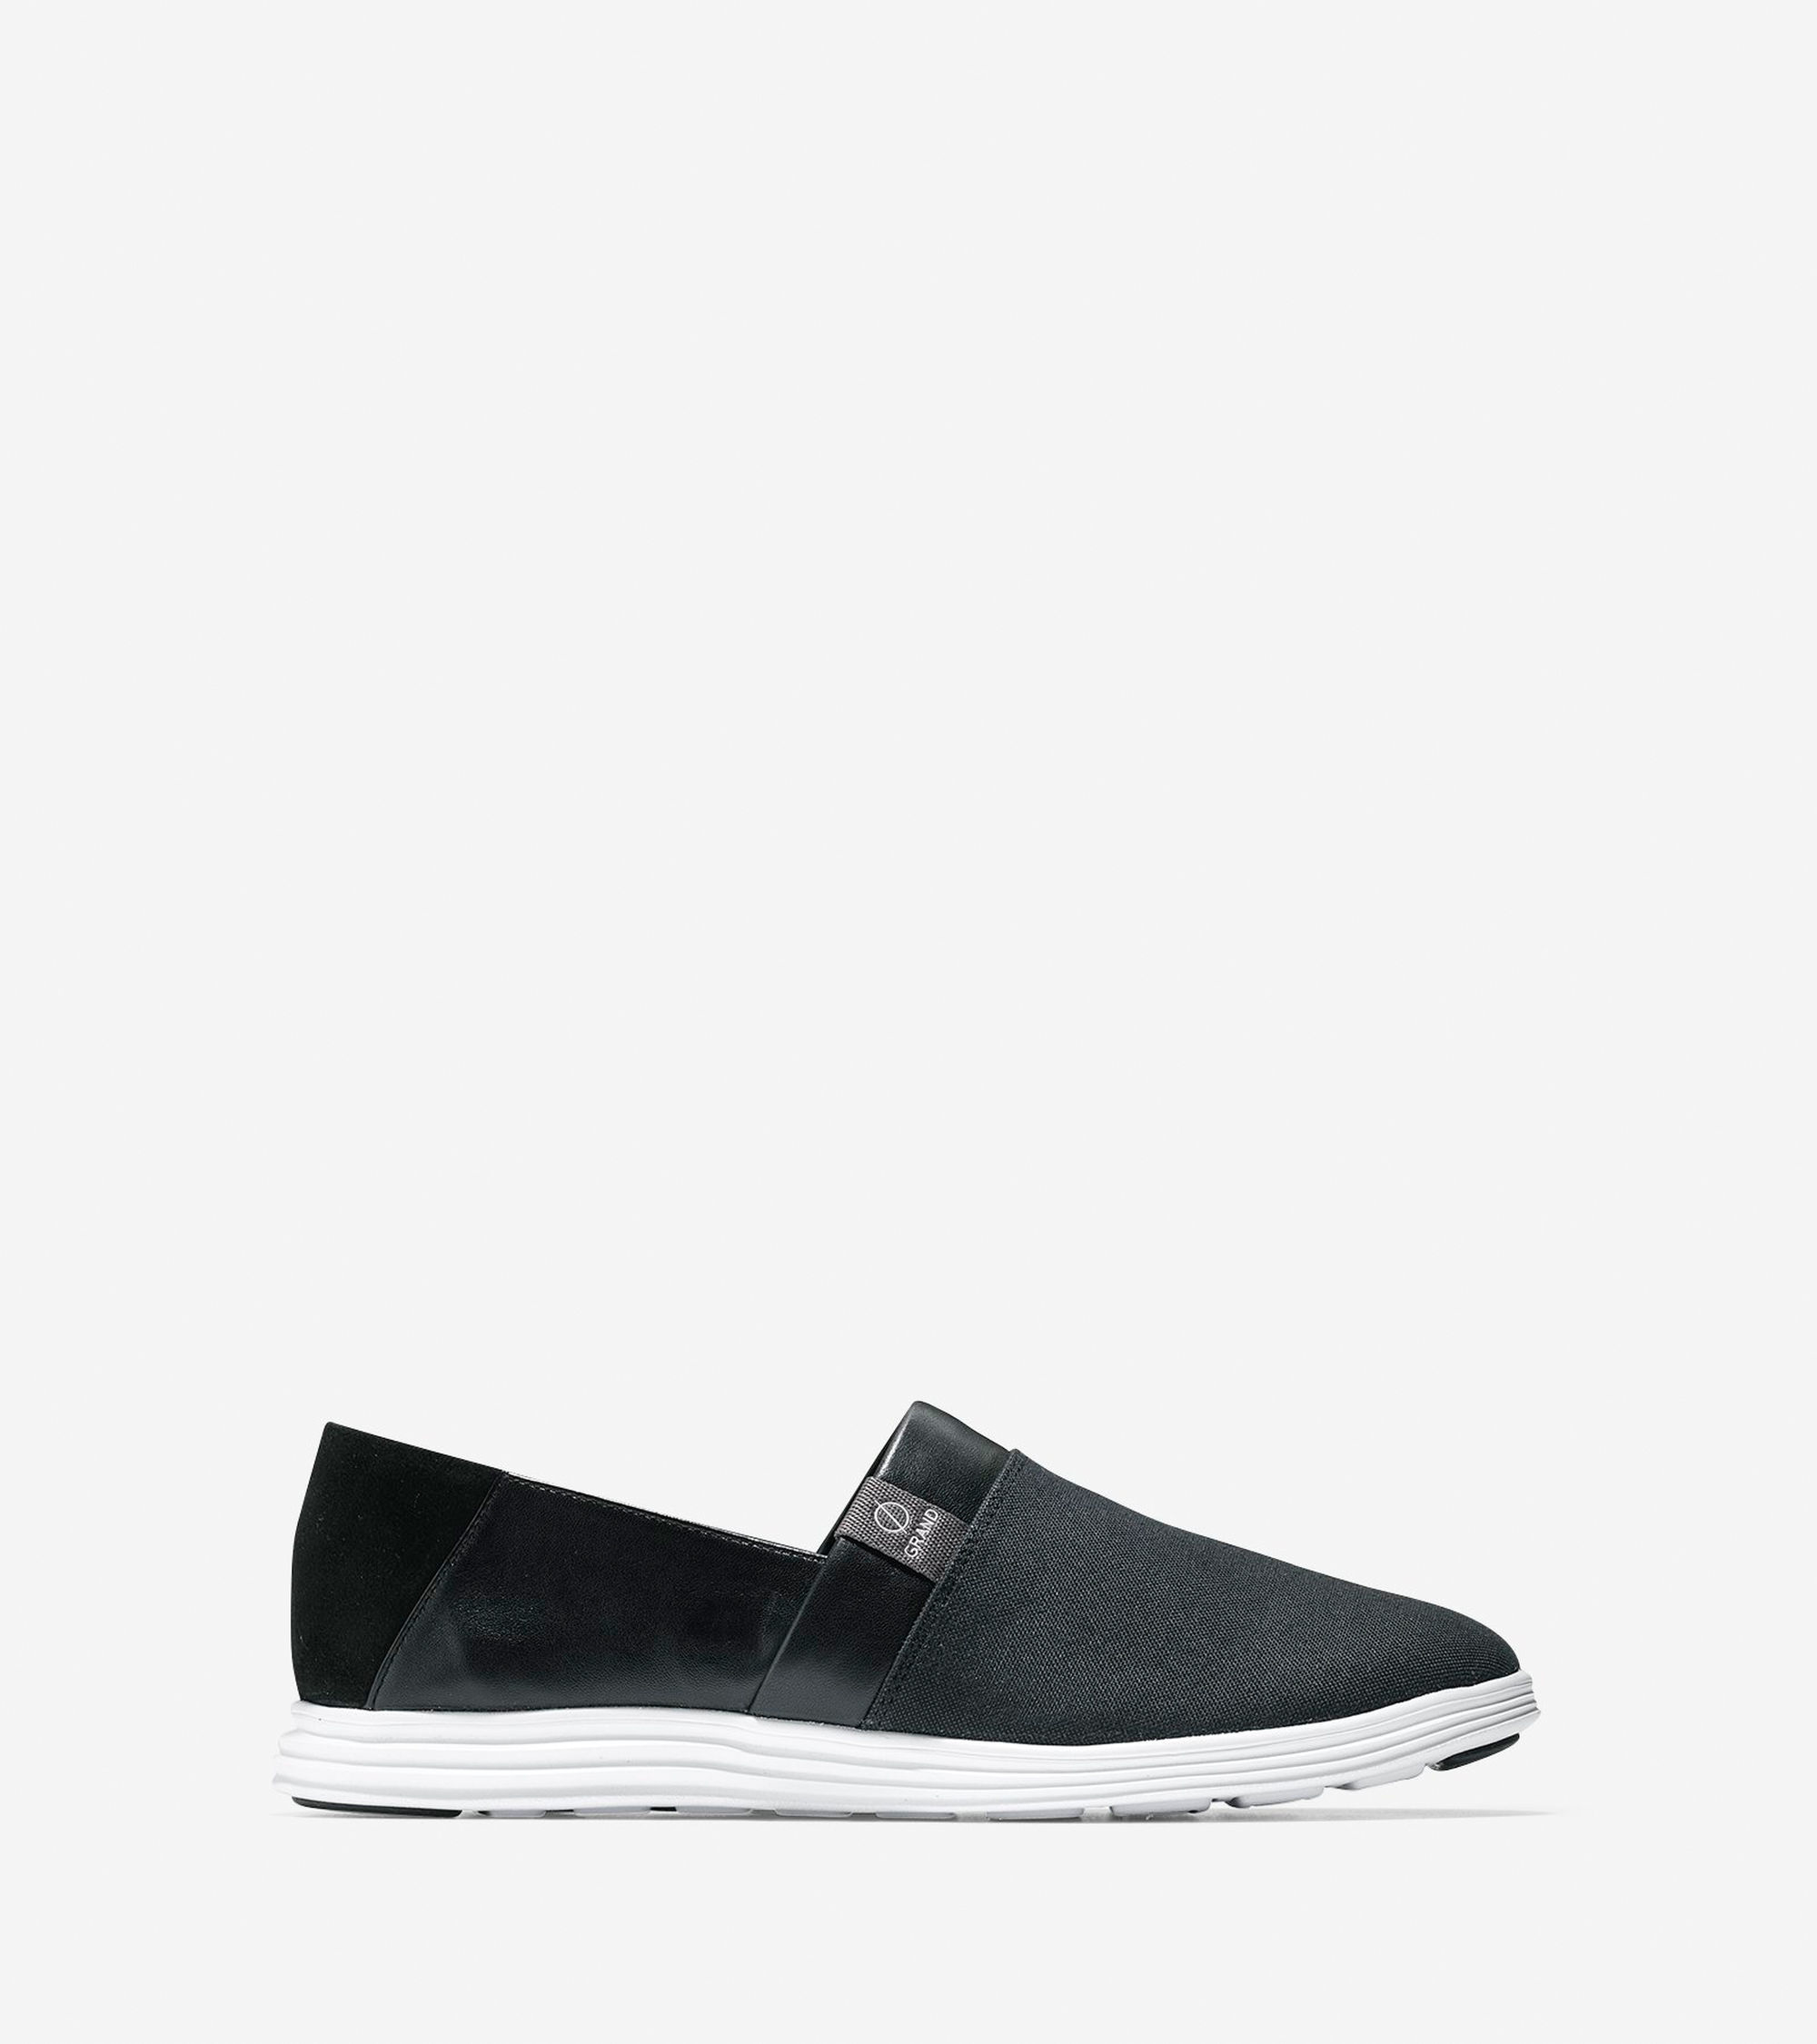 Sneaker Cole Haan Shoes Womens